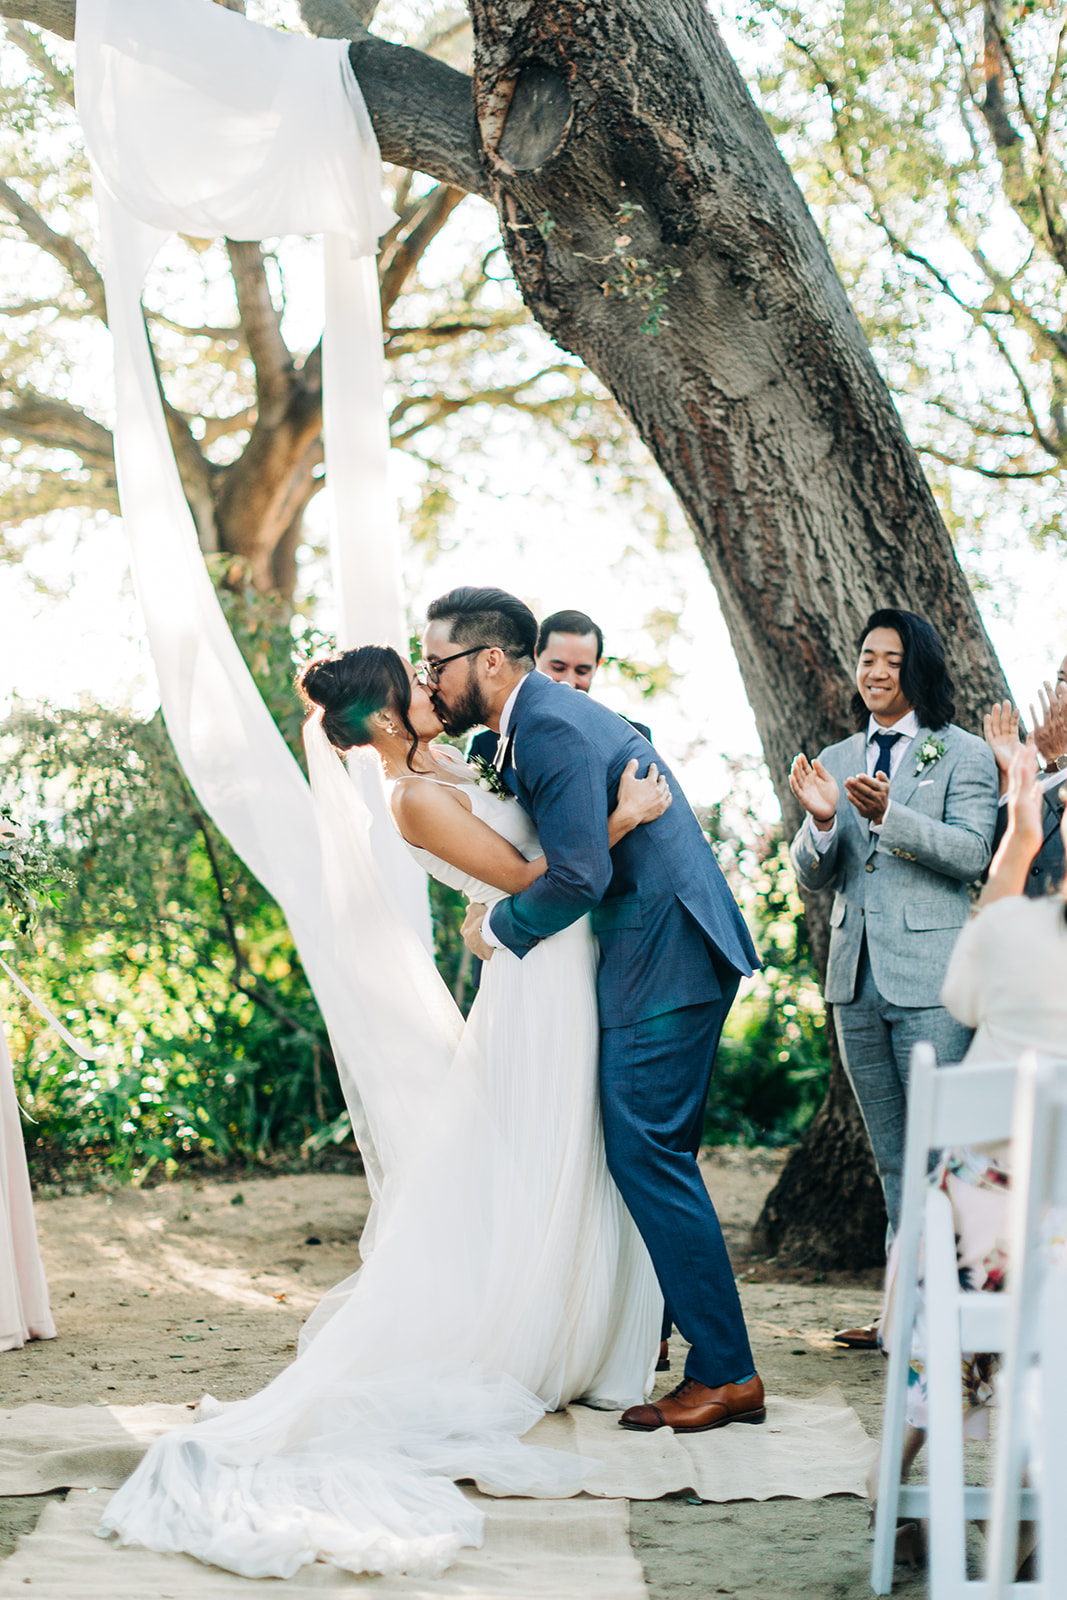 Los-Altos-History-Museum-Wedding_Orange-County-Wedding-Photographer_Clarisse-Rae-Photo-Video_60